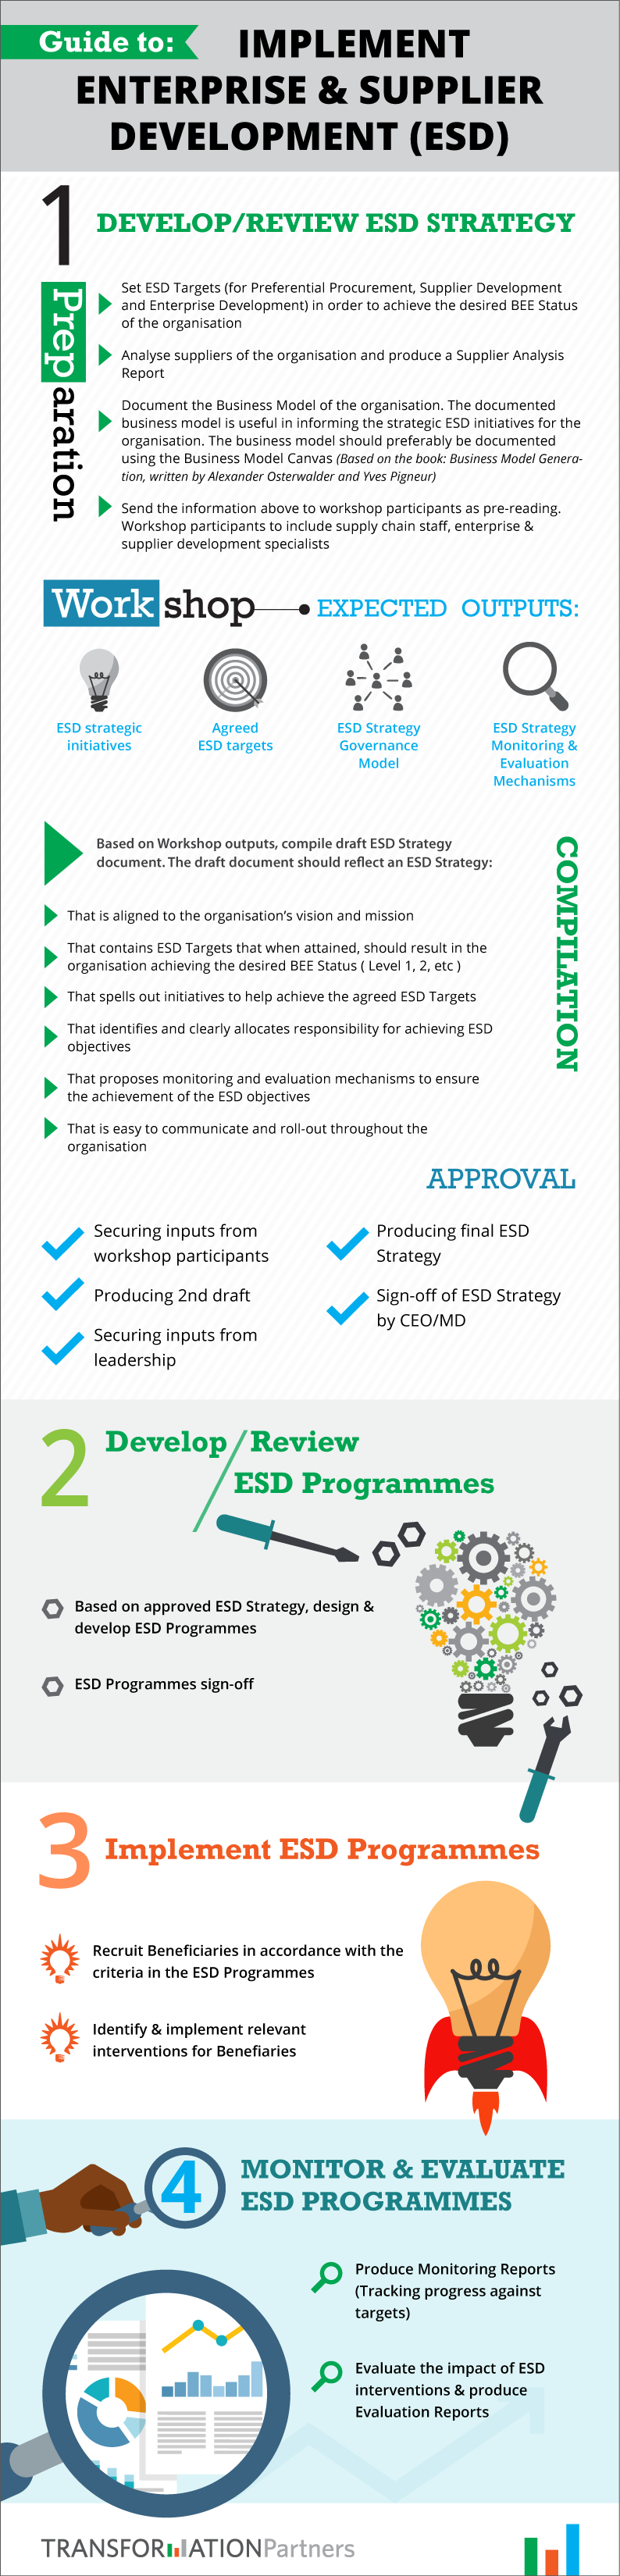 Infographic on how to implement Enterprise and Supplier Development